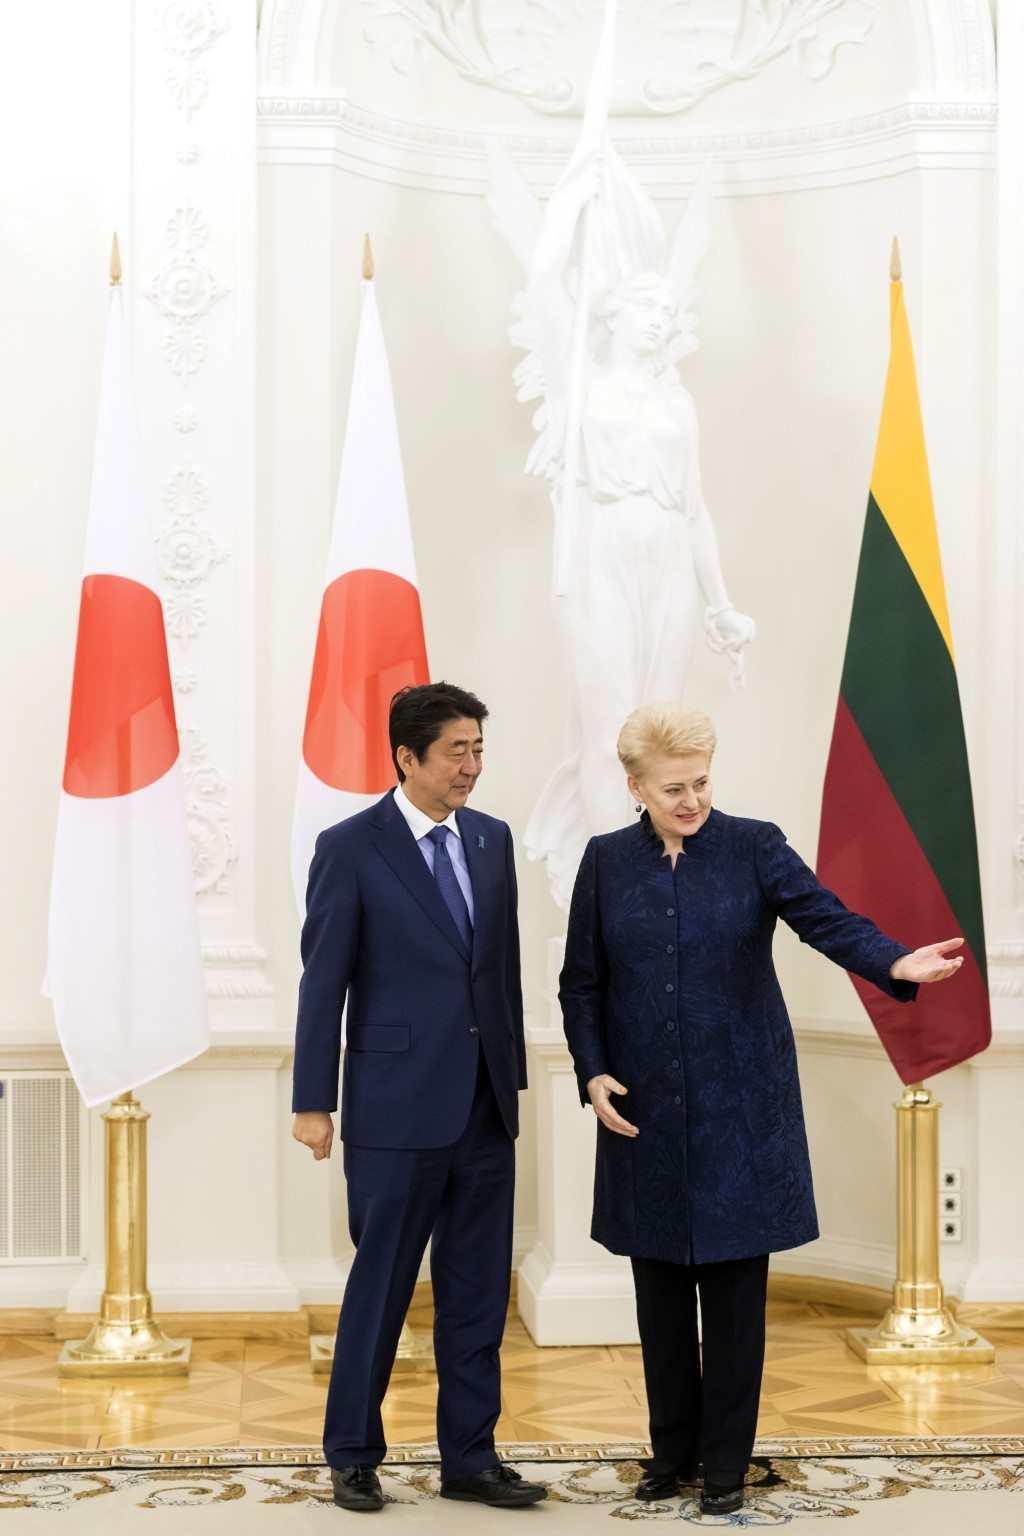 Lithuania's President Dalia Grybauskaite, right, speaks to the Japanese Prime Minister Shinzo Abe prior to their meeting at the Presidential palace in